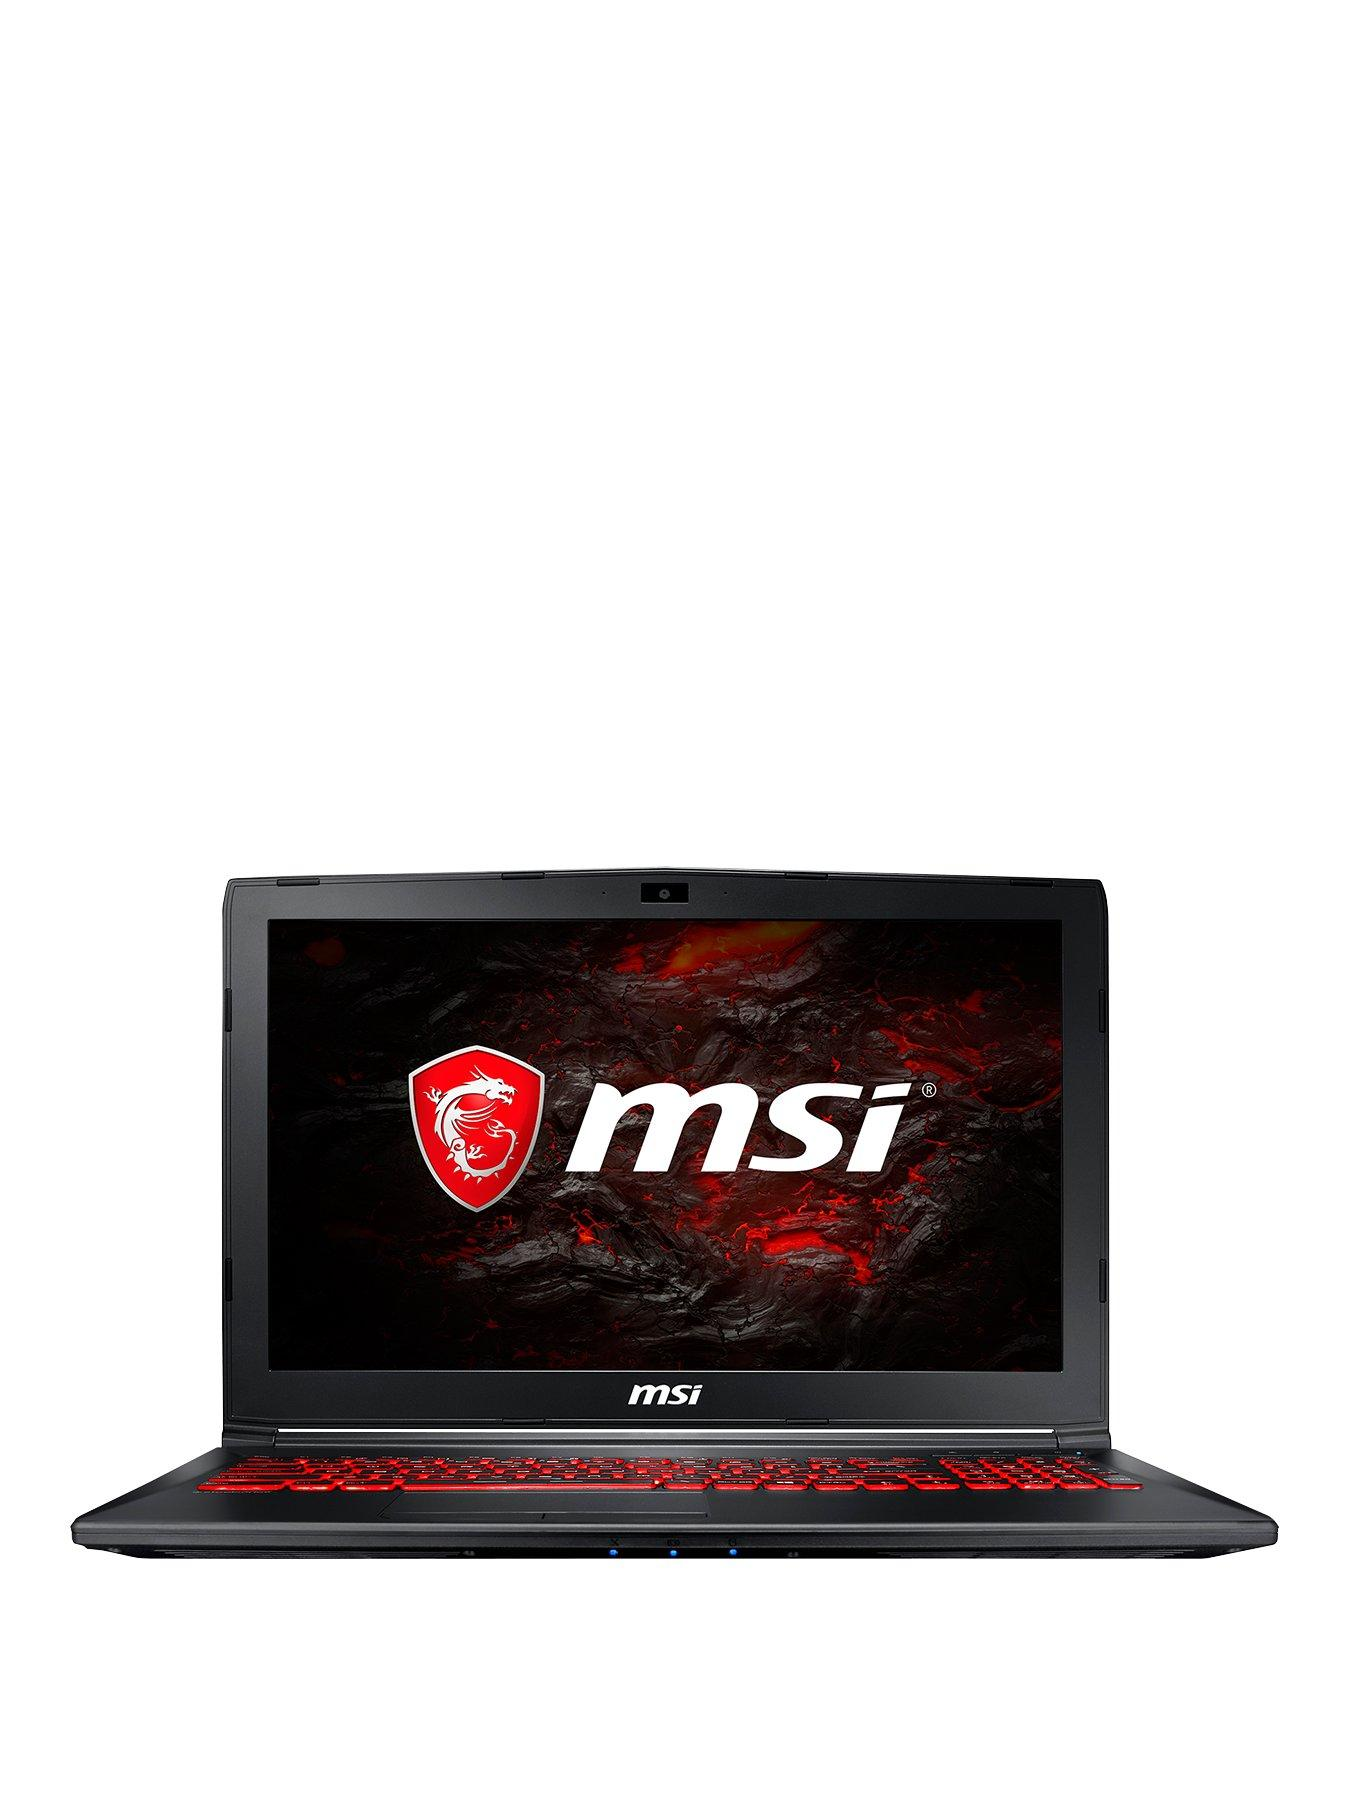 MSI GL62M 7RDX Intel® Core™ i7 Processor, 16Gb RAM, 1Tb Hard Drive, 15.6 inch FHD Gaming Laptop with GeForce GTX 1050 Graphics Includes Bundle Pack